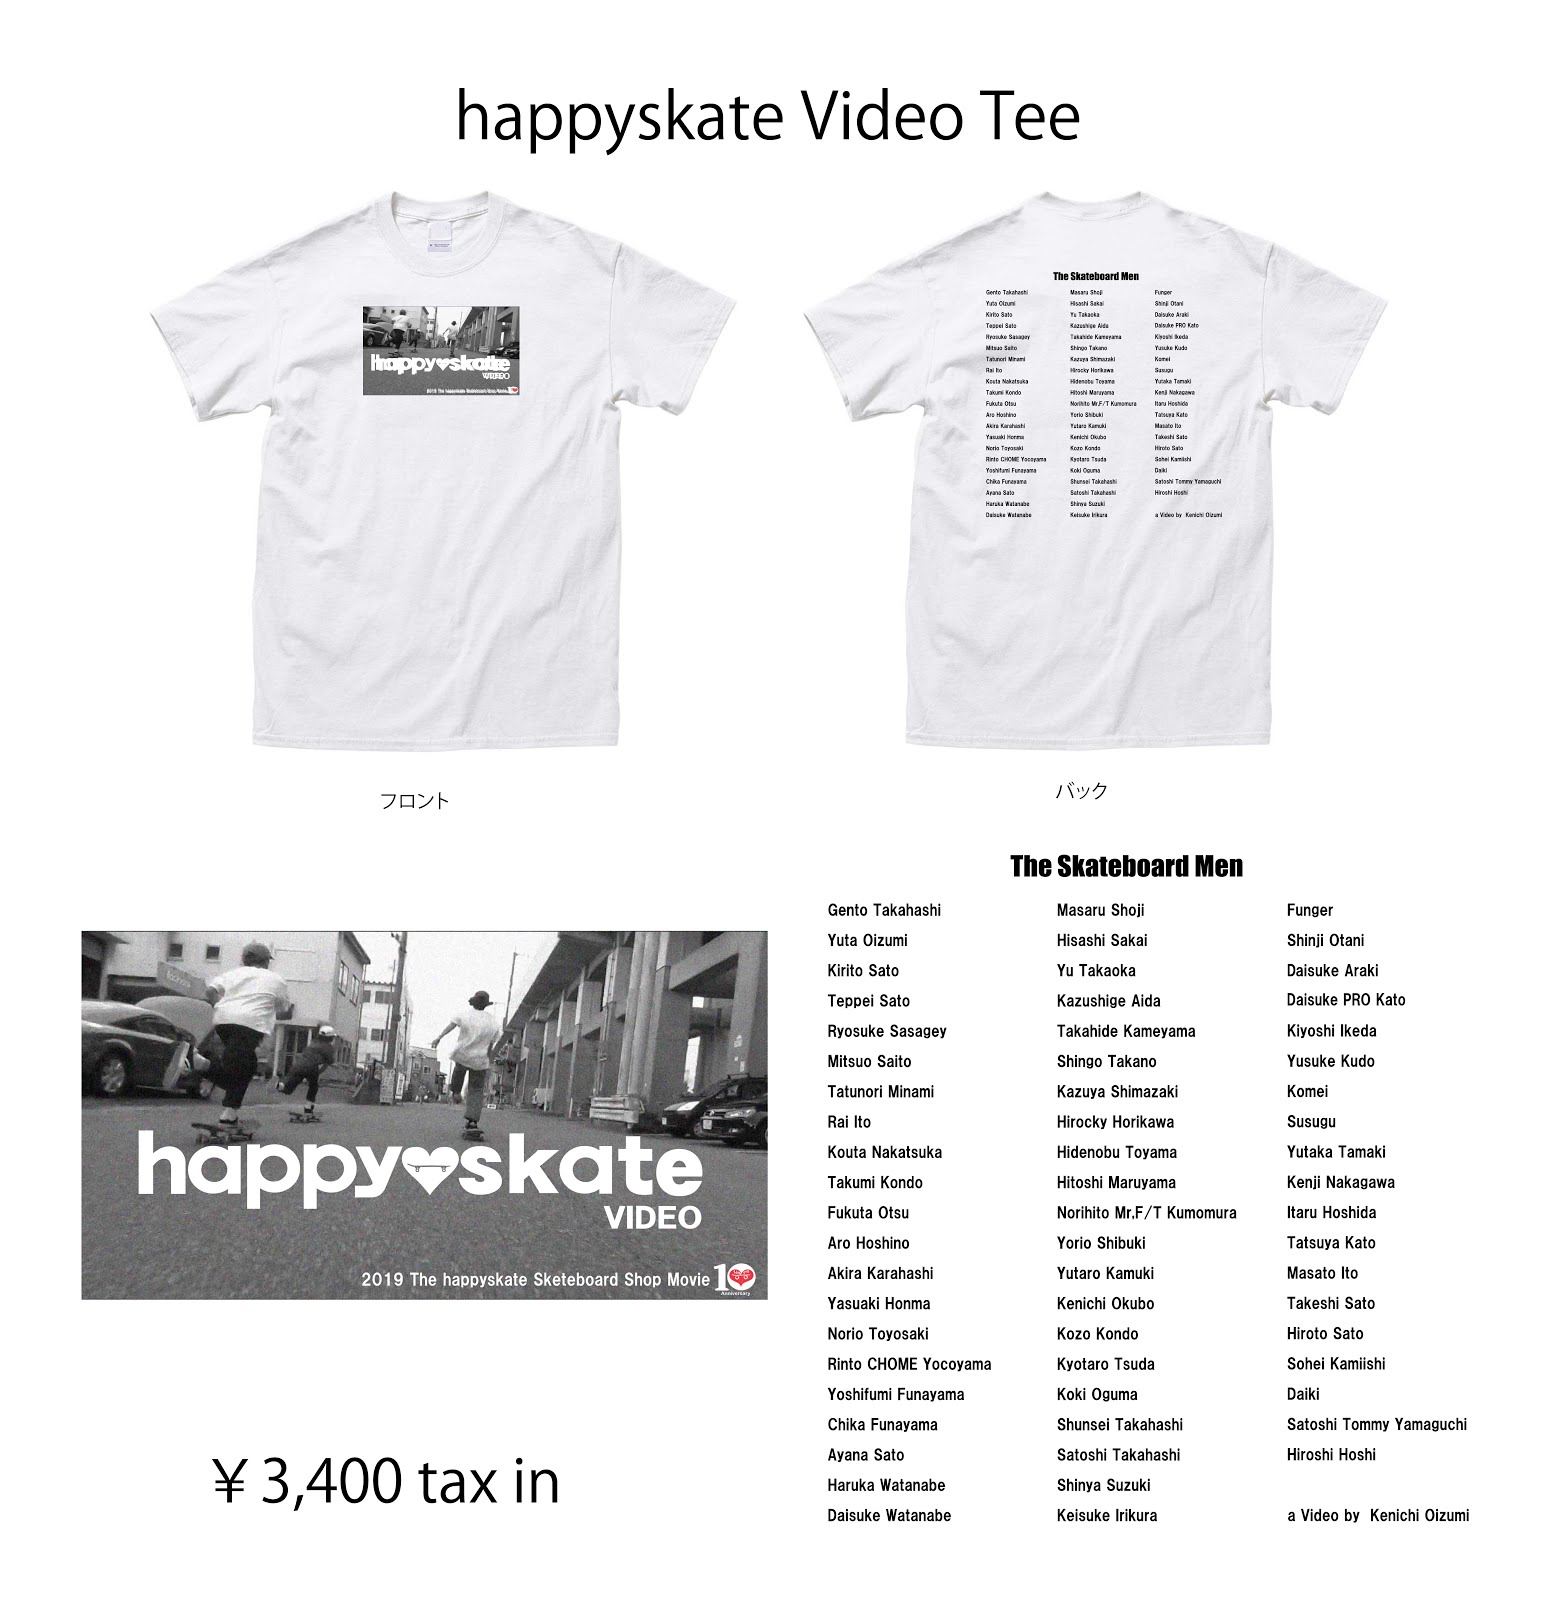 happyskateVIDEO Tee